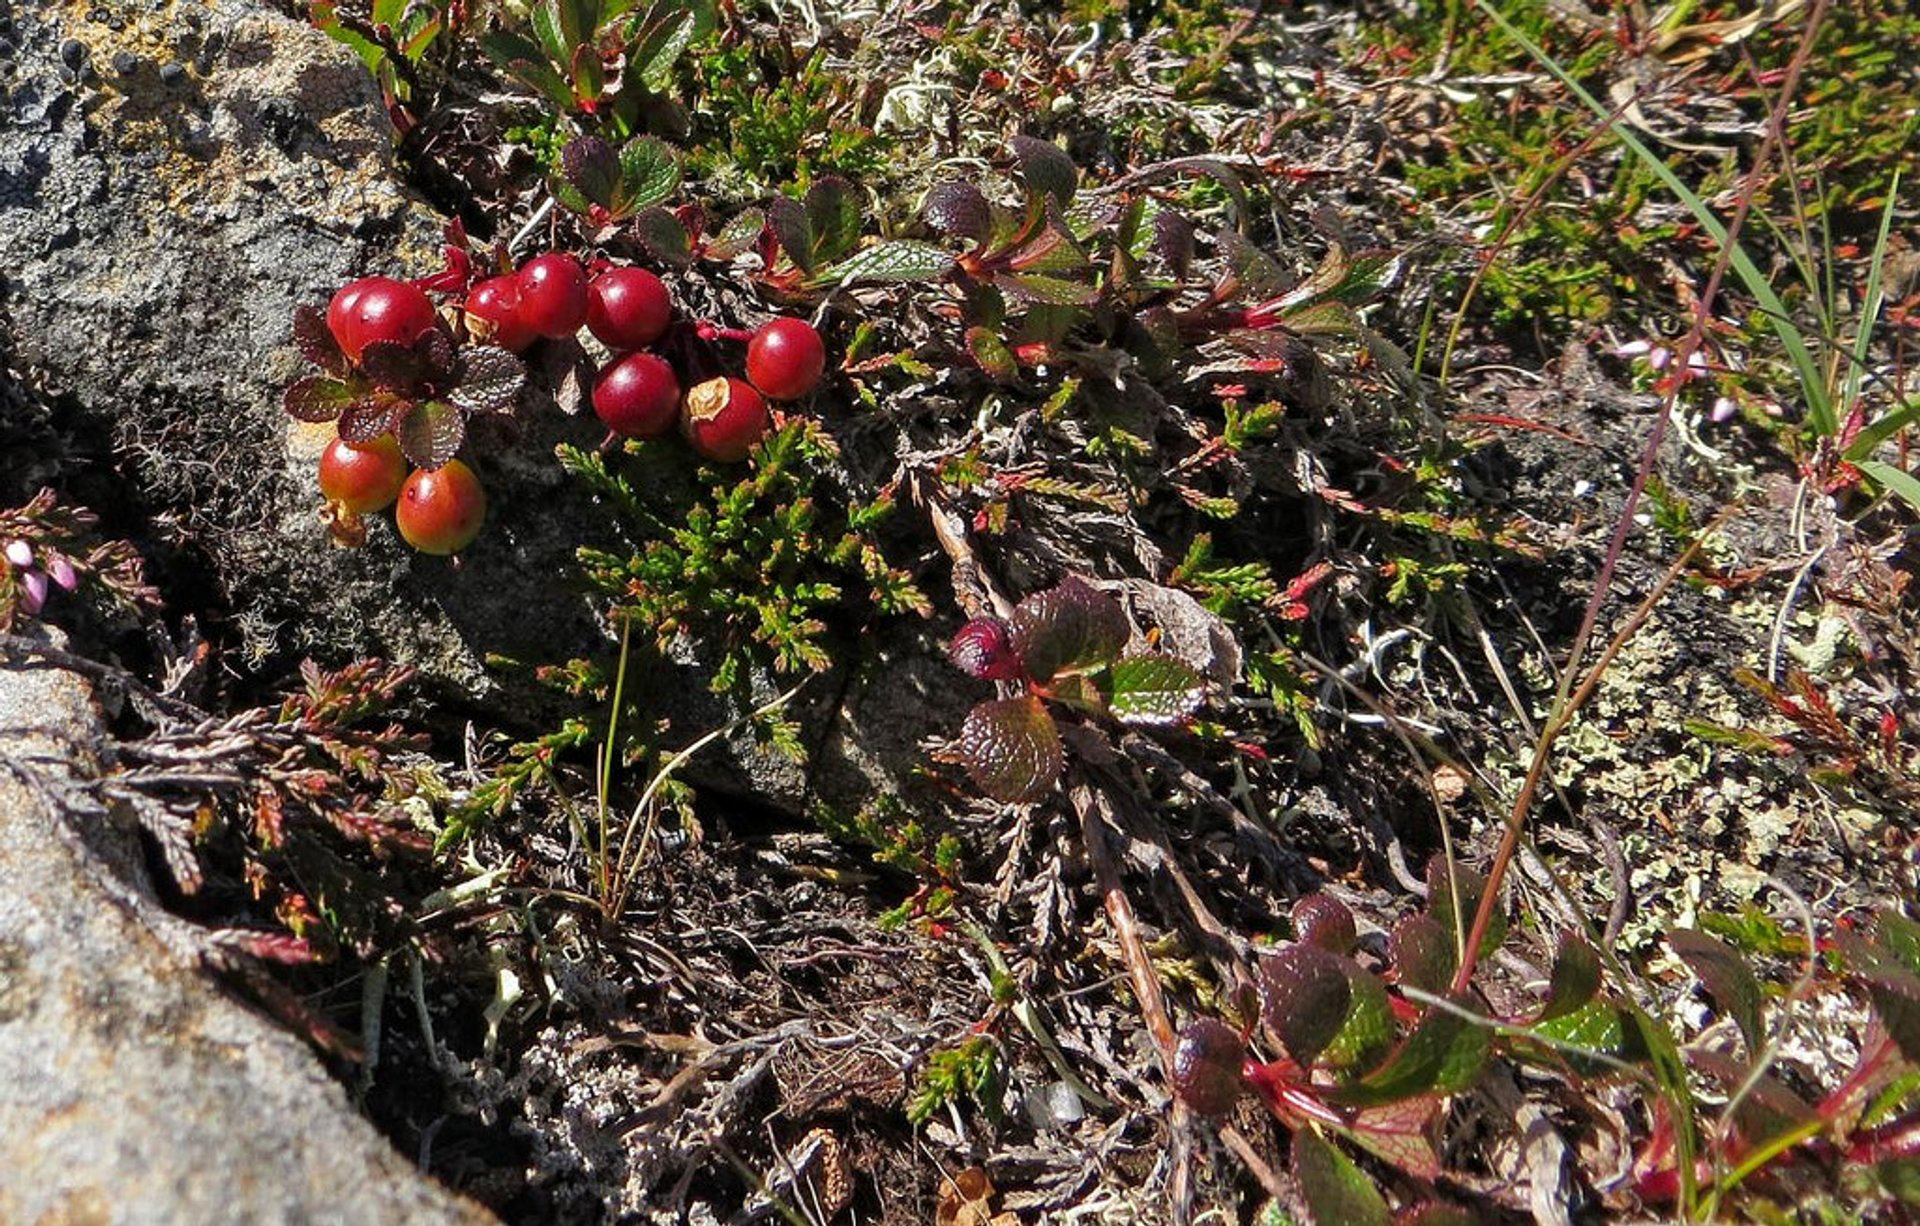 Bearberry is edible, but it contains acids that can give nausea, vomiting and fever if too many is eaten 2019